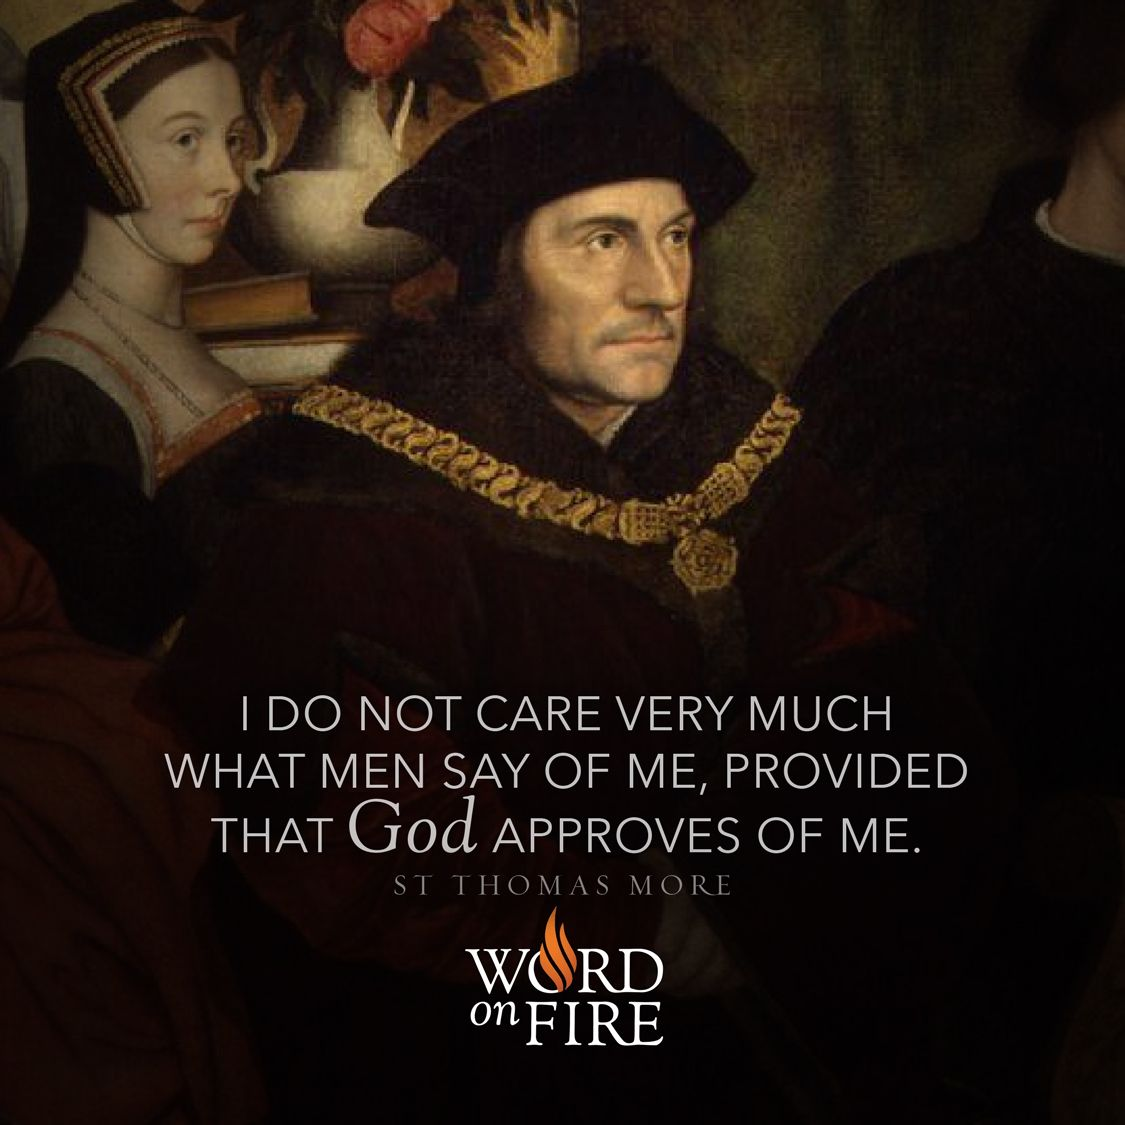 I do not care very much what men say of me, provided that God